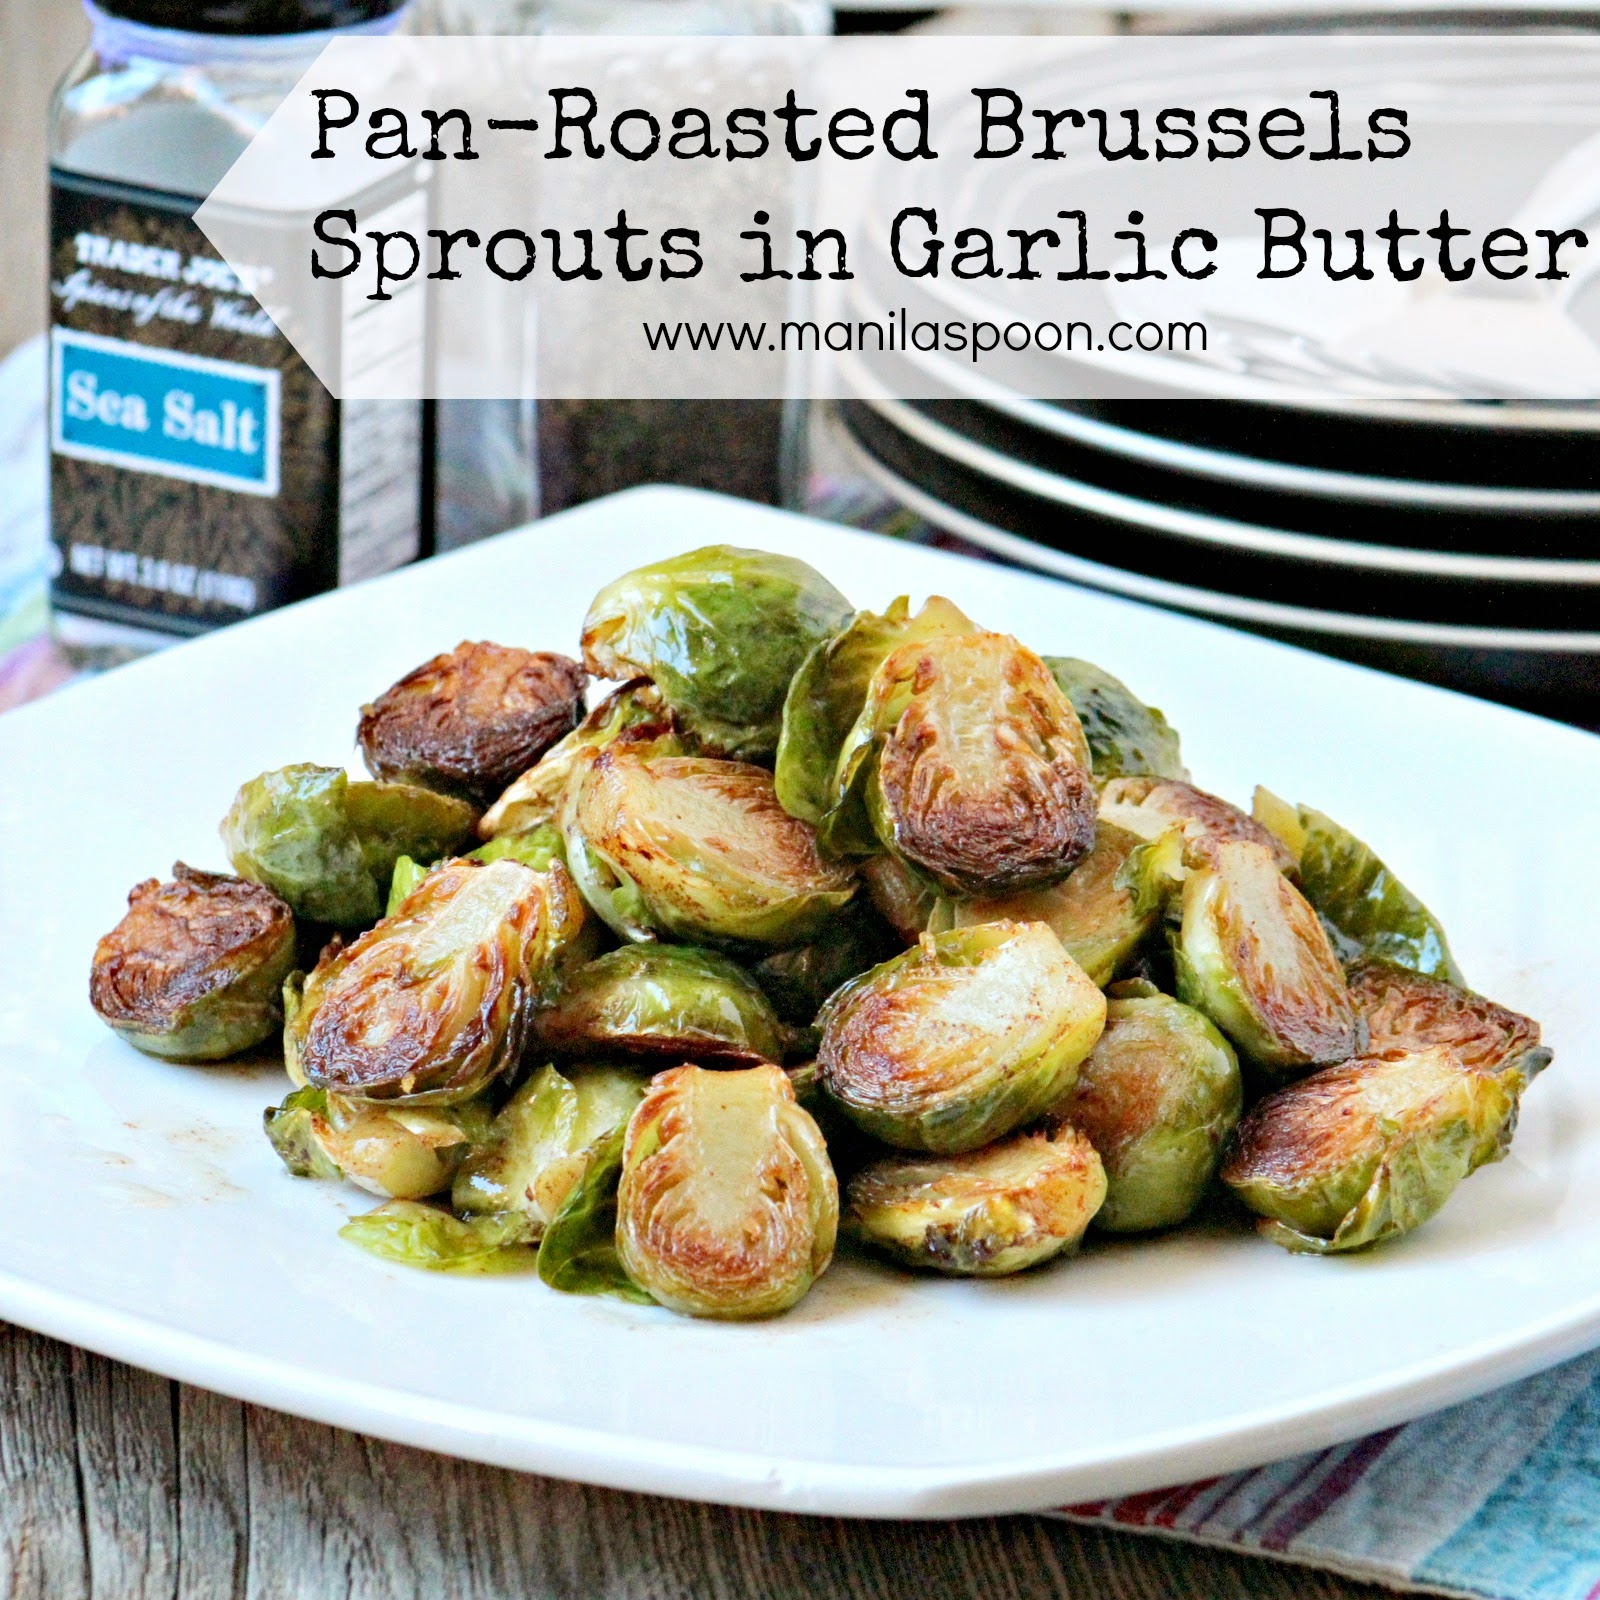 Pan Roasted Brussels Sprouts in Garlic Butter